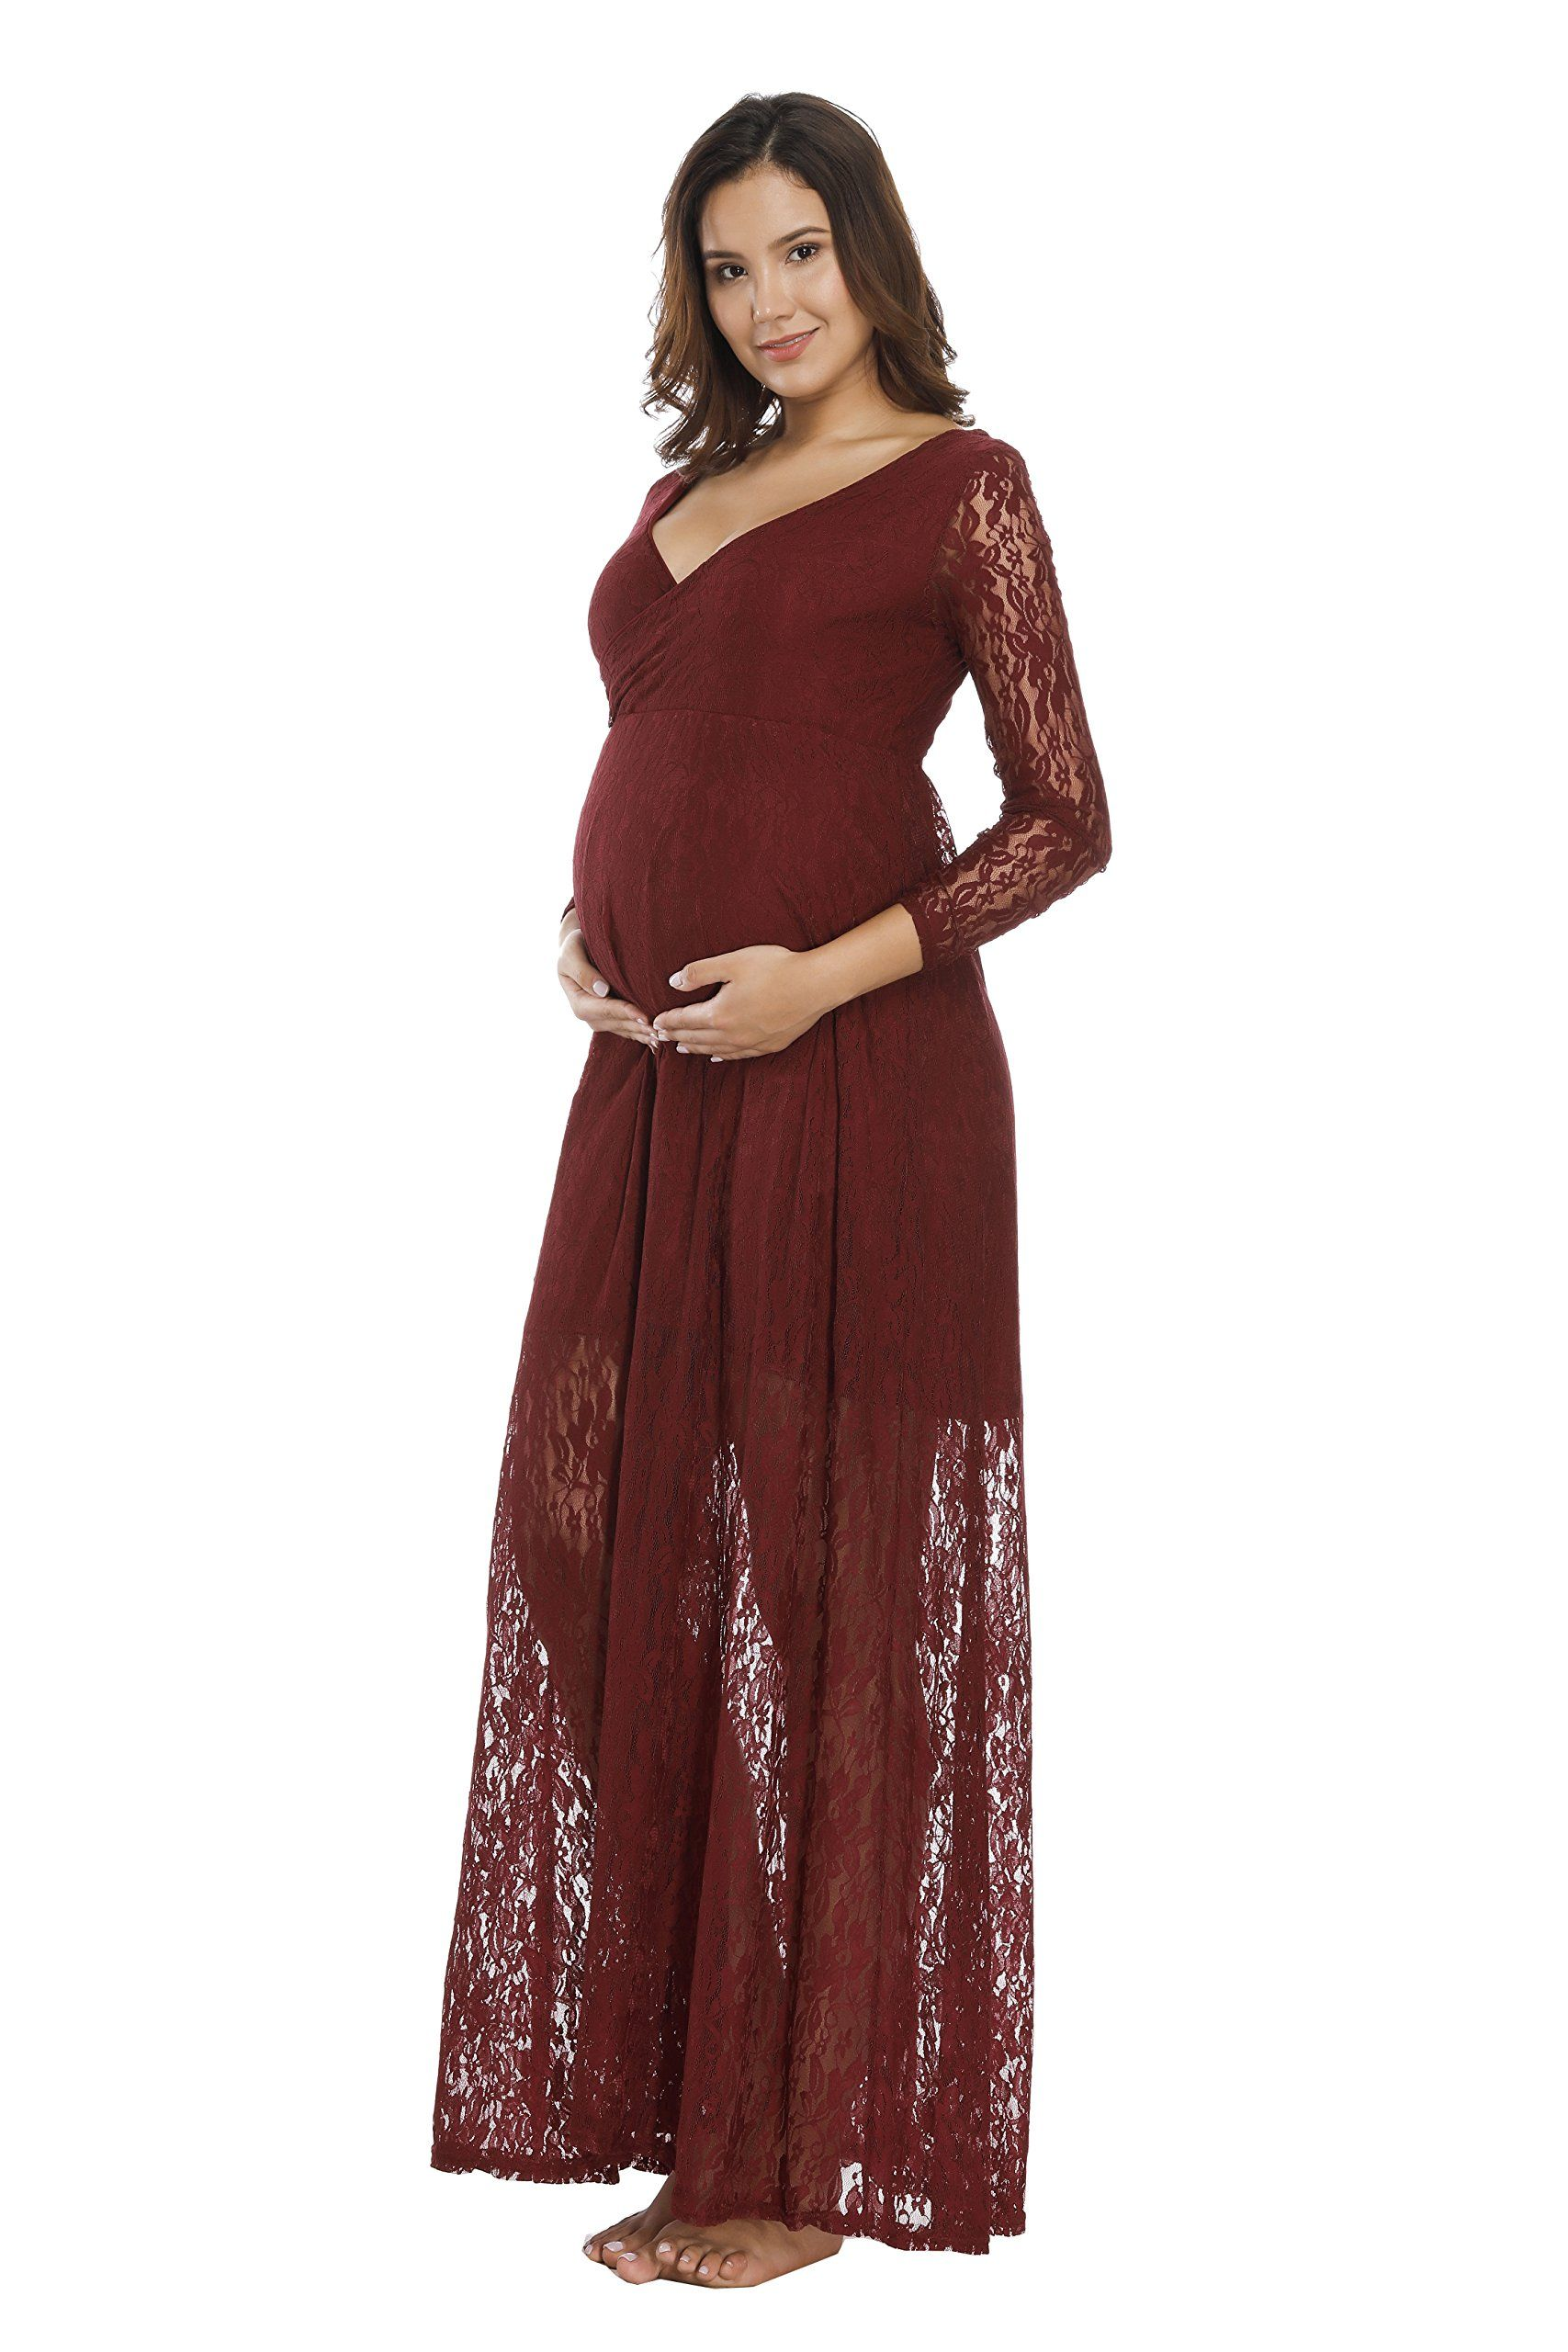 5e181b379479a Maternity Dresses - JustVH Womens Plus Size Cross V Neck Long Sleeve Lace  Gown Maxi Maternity Dress for Photography *** Continue to the product at  the image ...